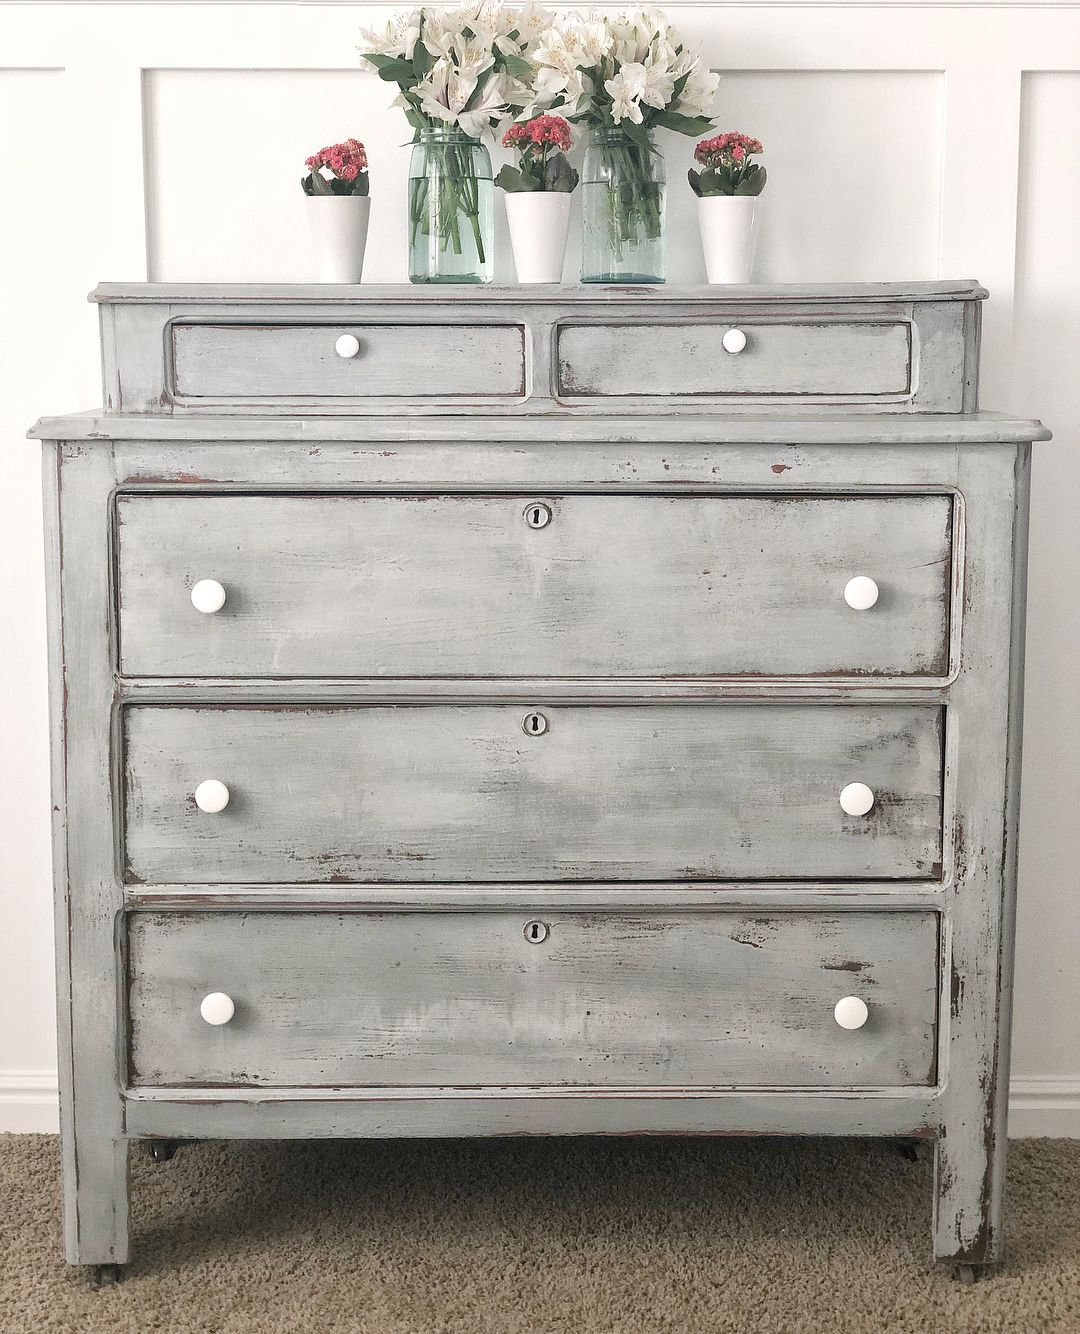 French Country Love Beautiful Antique Dresser 295 Turn Of The Century Solid Wood Drawers Are Dove Grey Bedroom Furniture Furniture Refinishing Furniture [ 1334 x 1080 Pixel ]